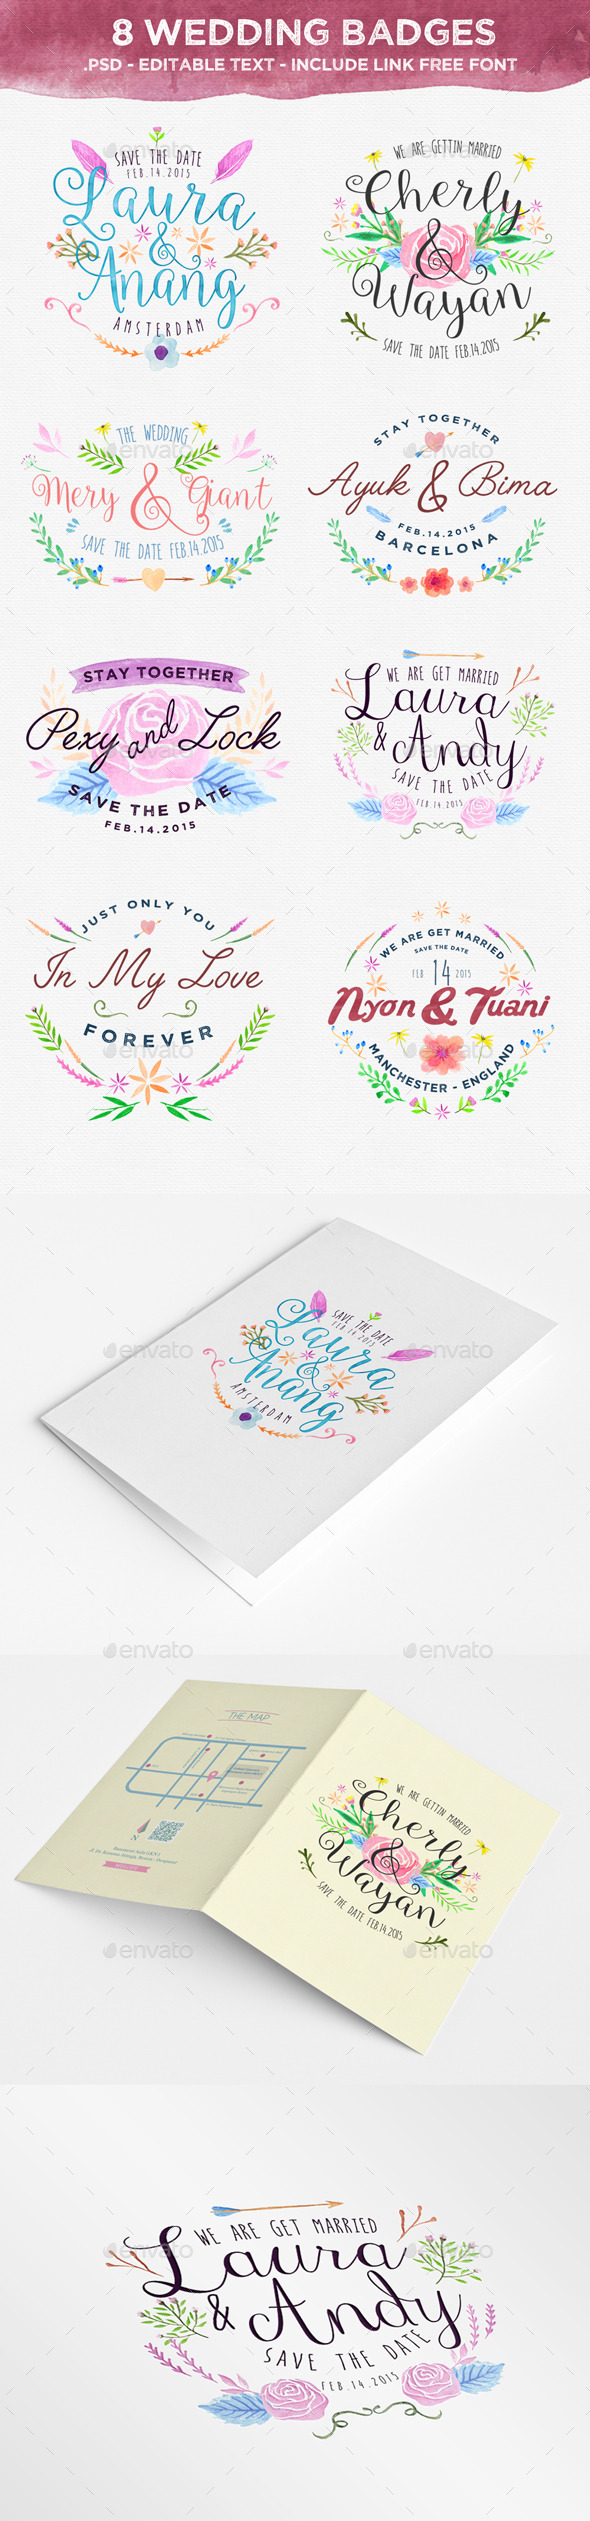 8 Wedding Badges - Badges & Stickers Web Elements